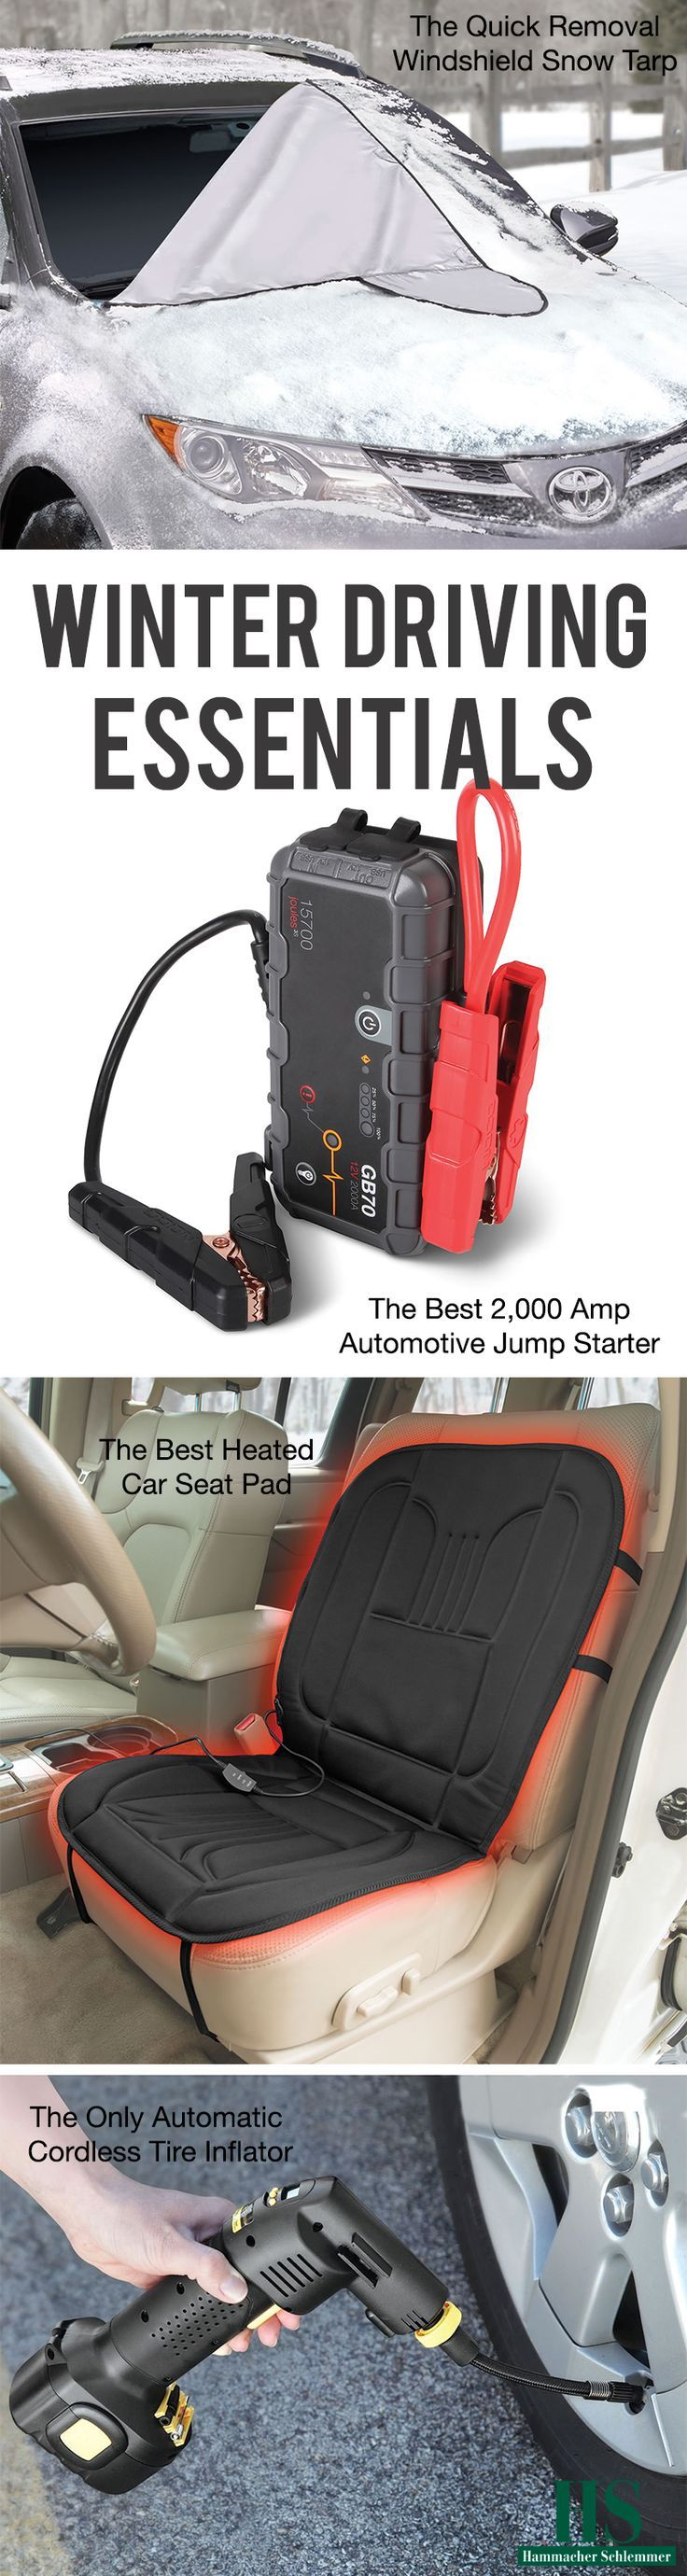 Winter Driving Essentials. Don't leave home without them this winter.